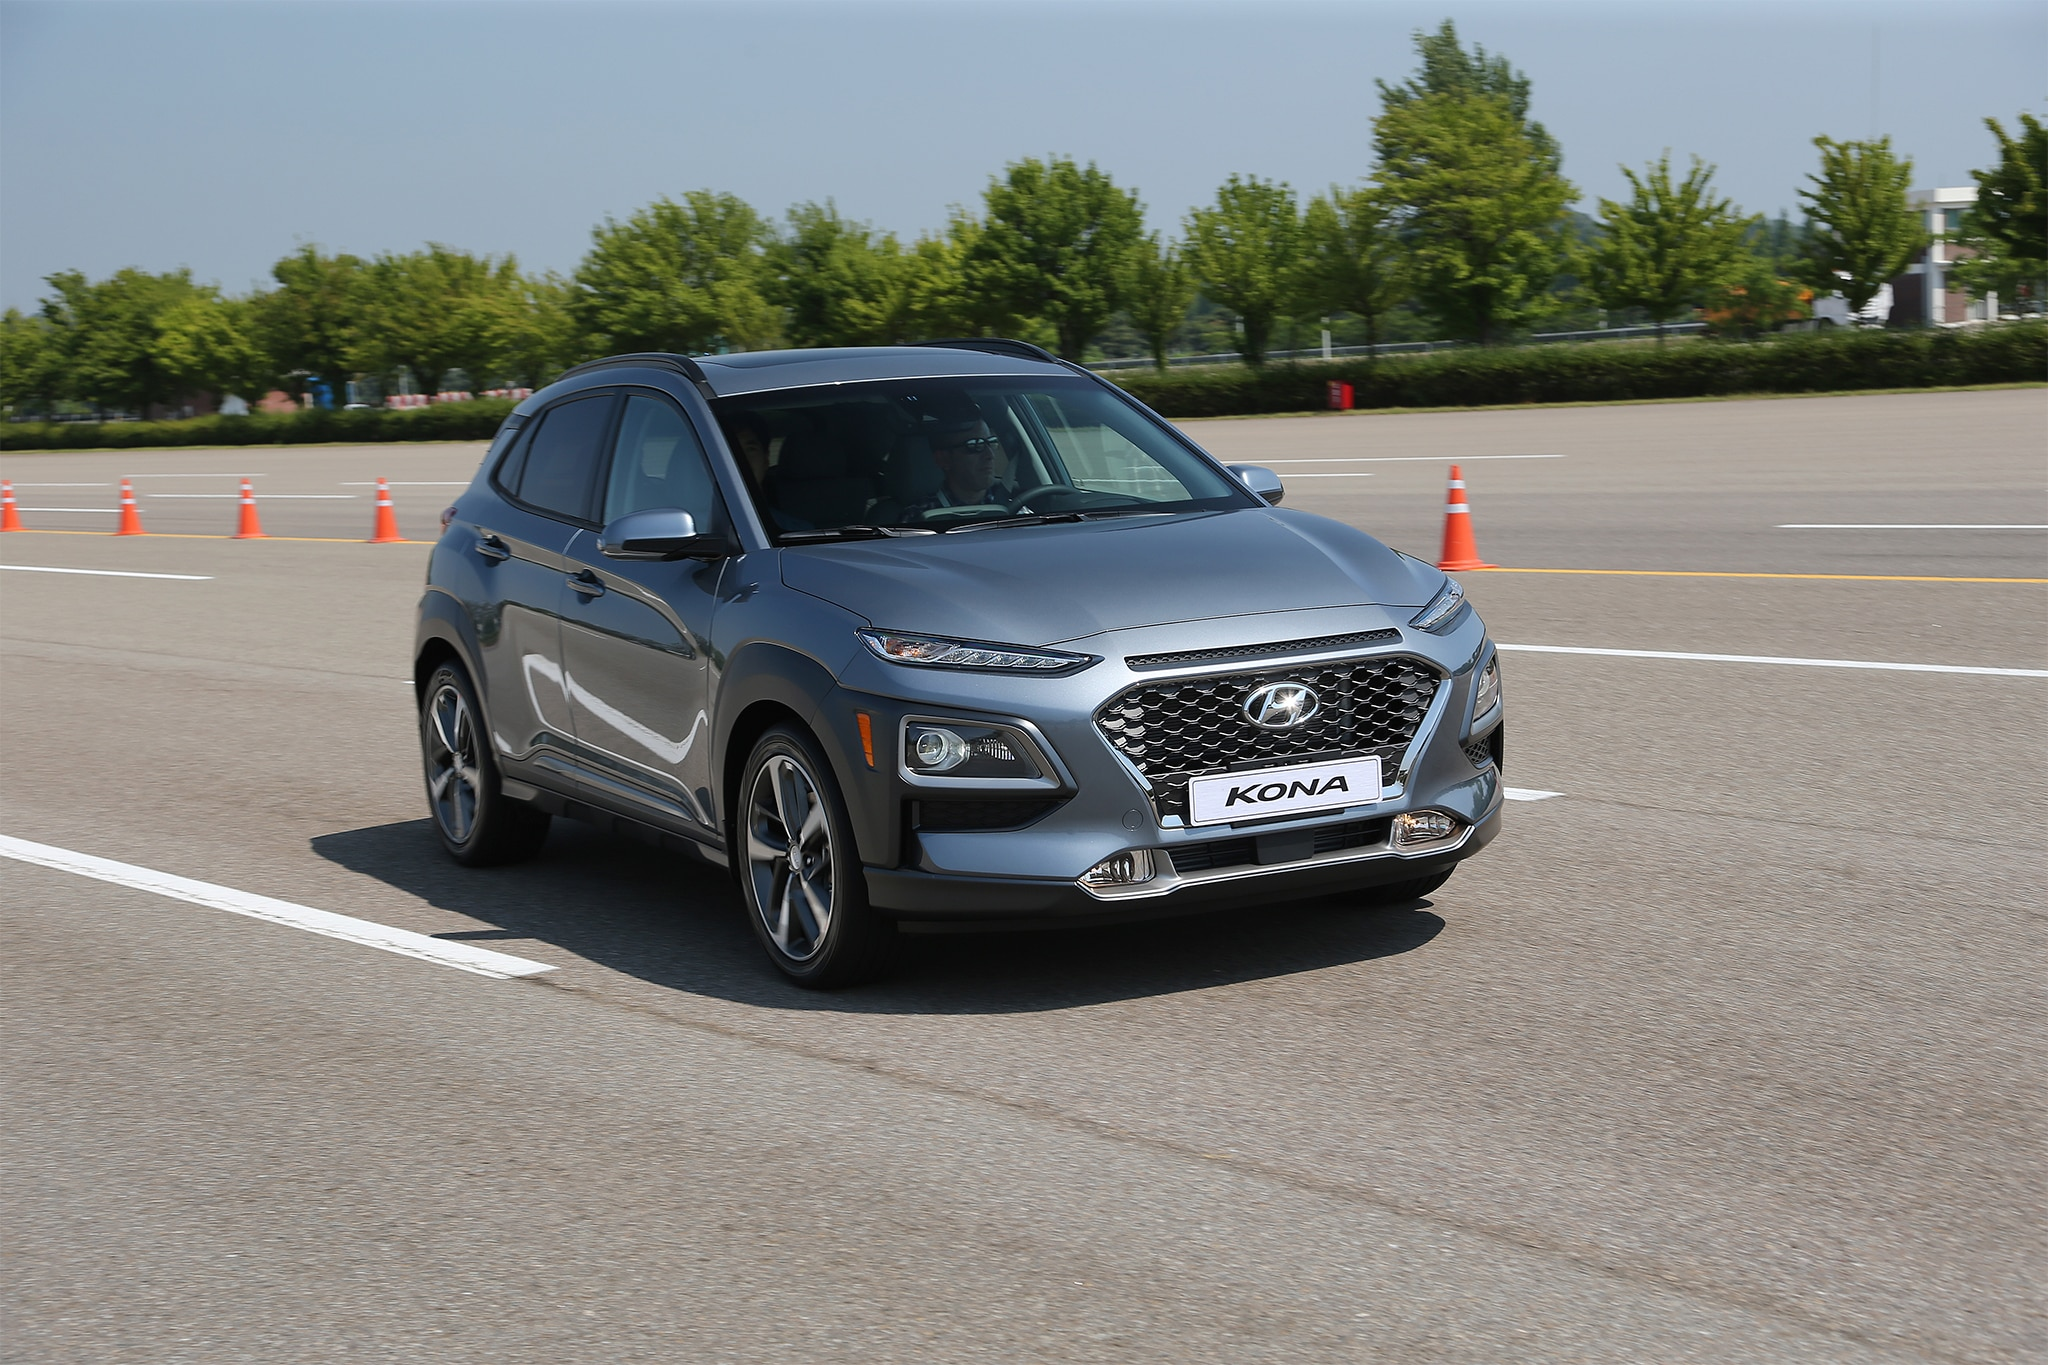 2018 Hyundai Kona Proving Grounds 03